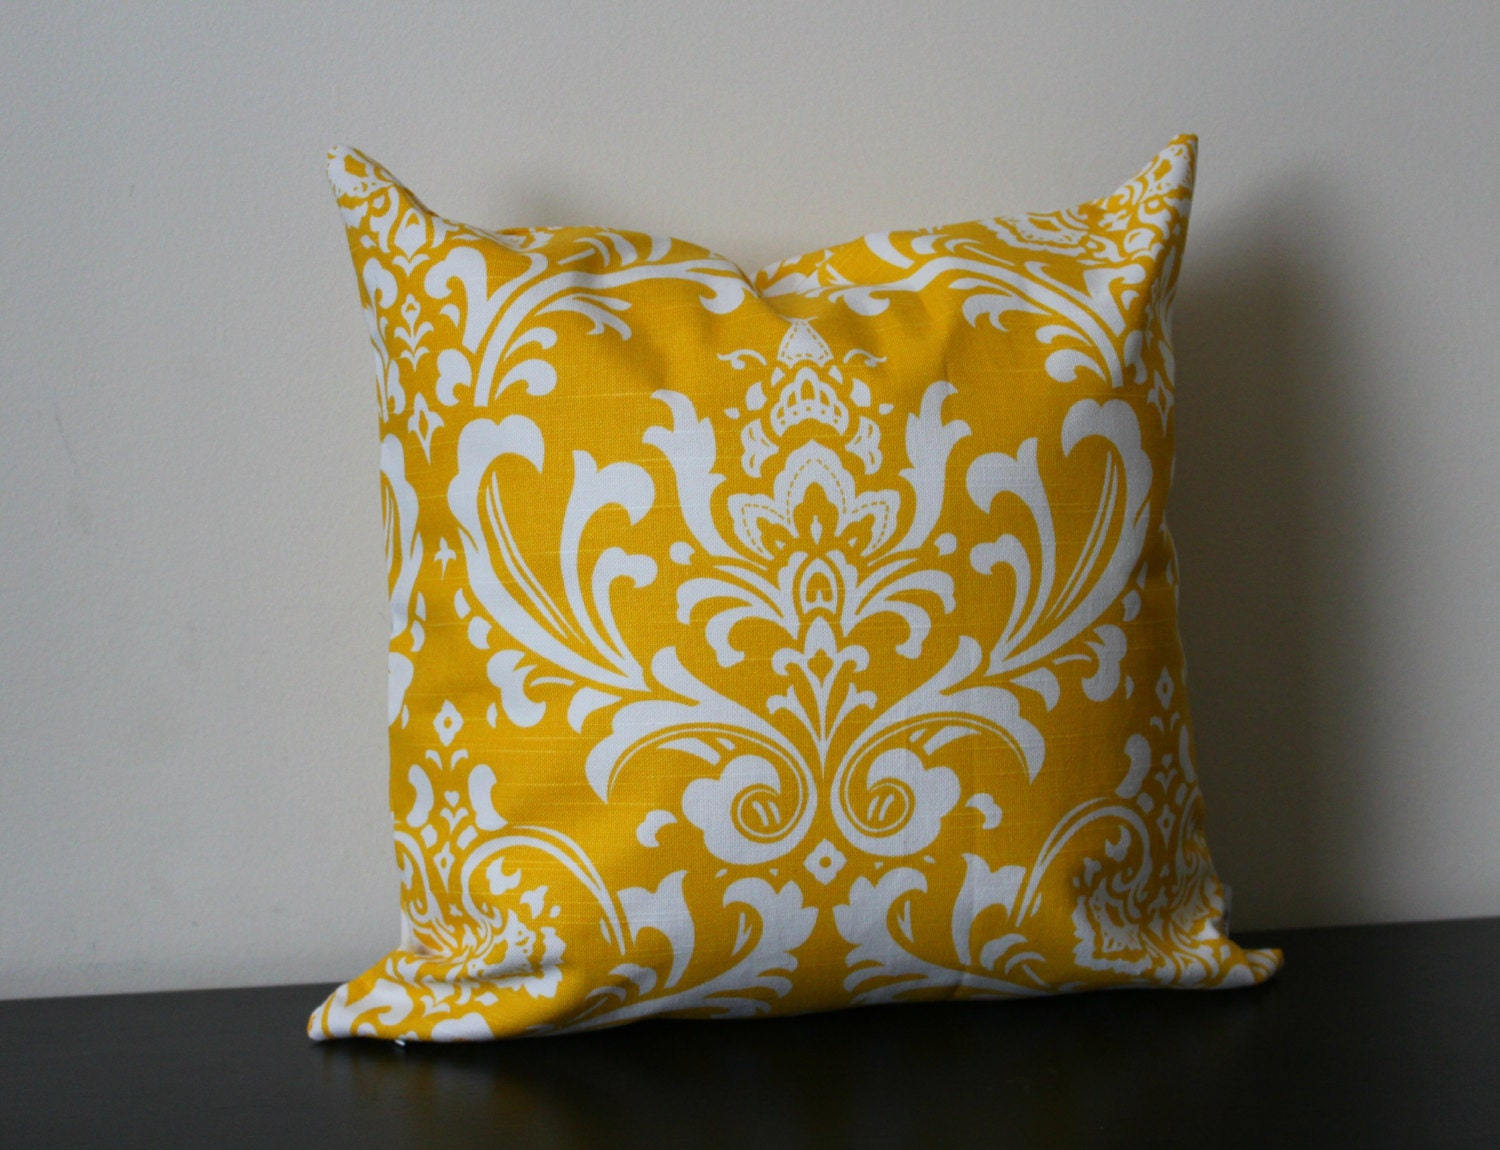 Throw Pillow Yellow : Decorative Throw Pillow Cover Yellow and White Damask